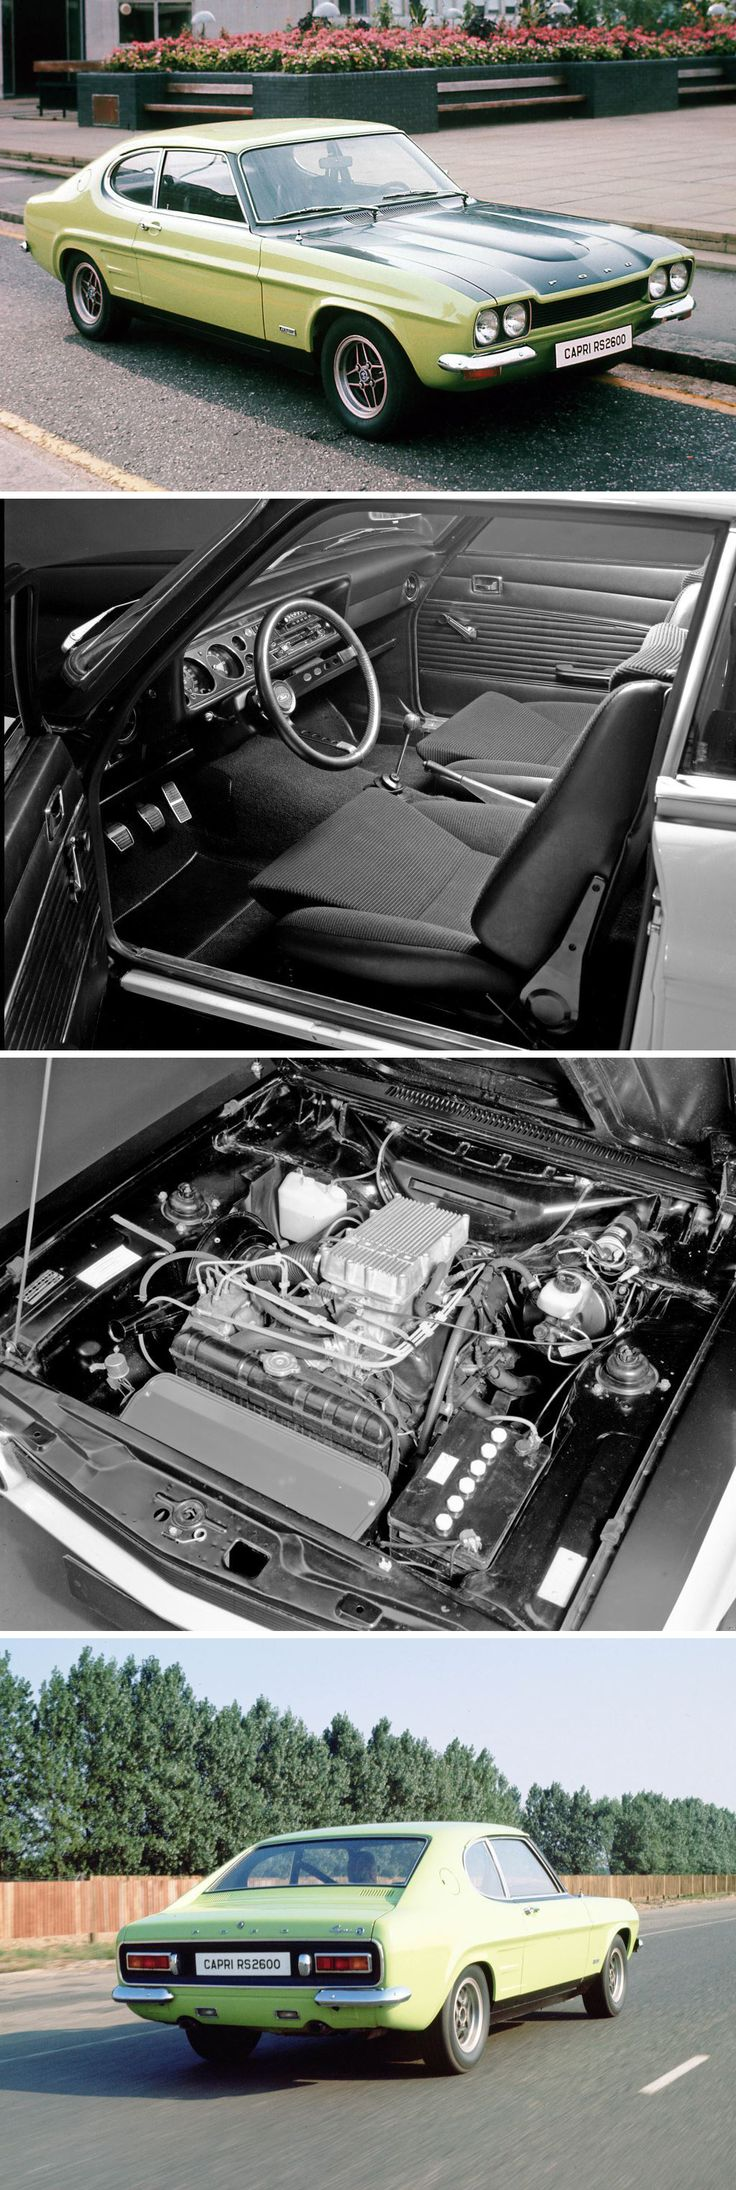 166 best Mercury: Automobiles: All images on Pinterest